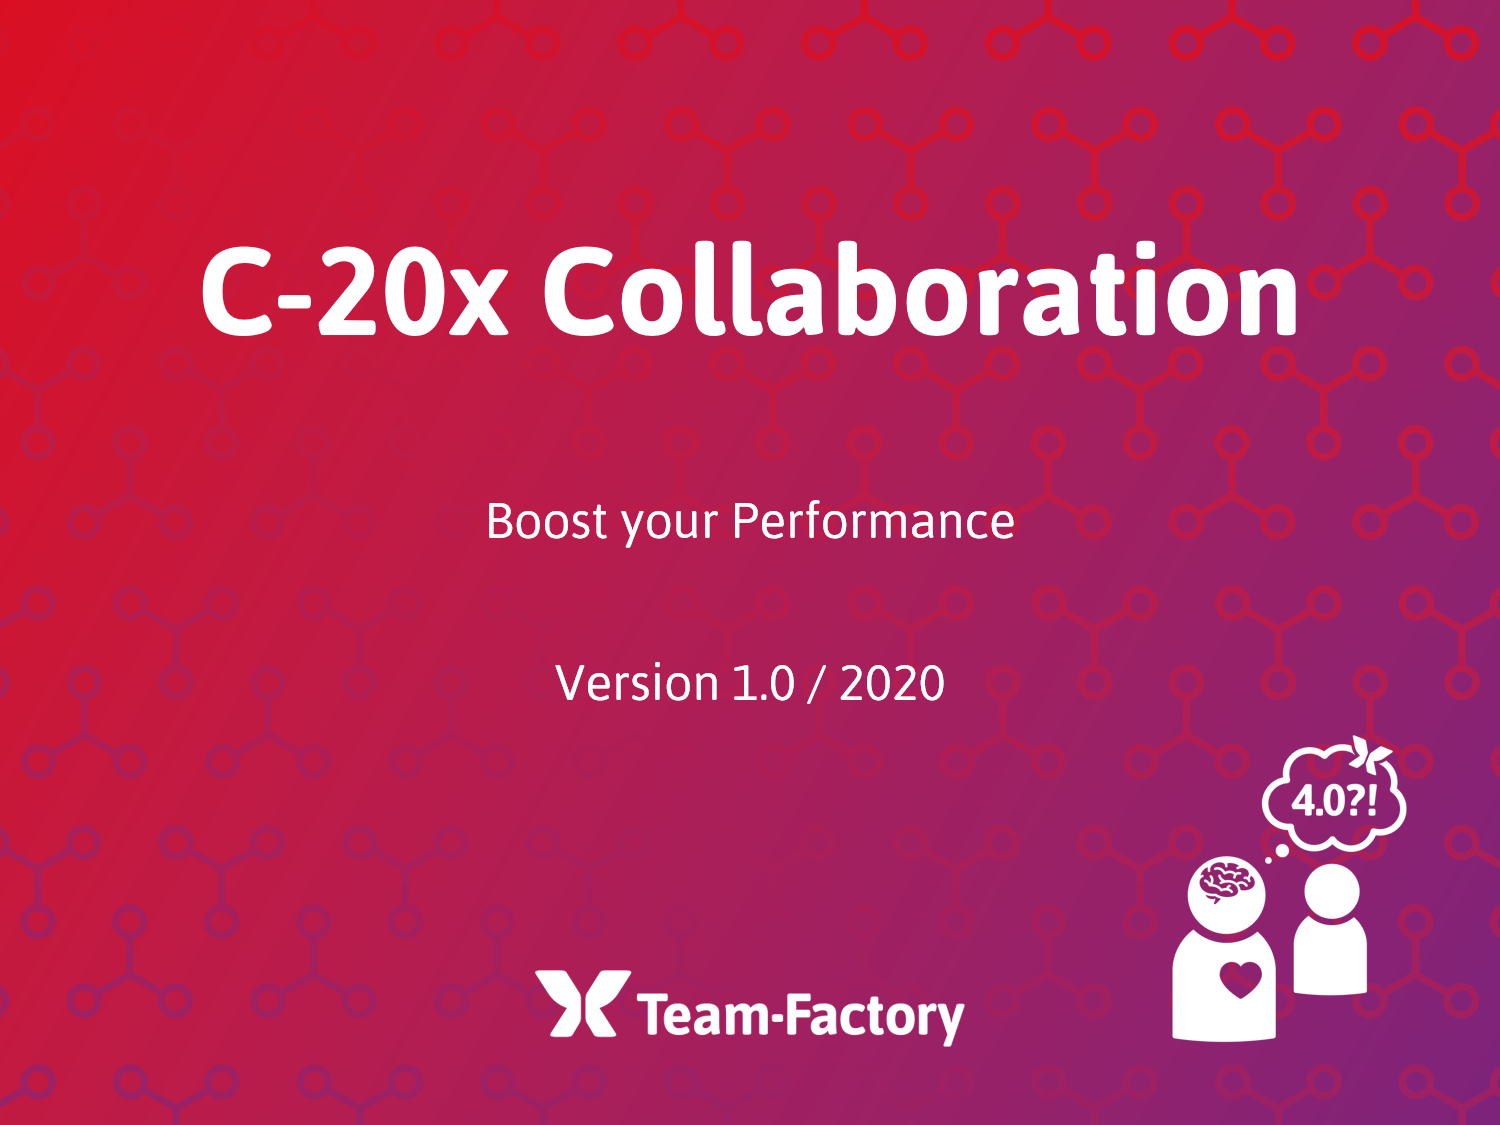 C-20 Collaboration